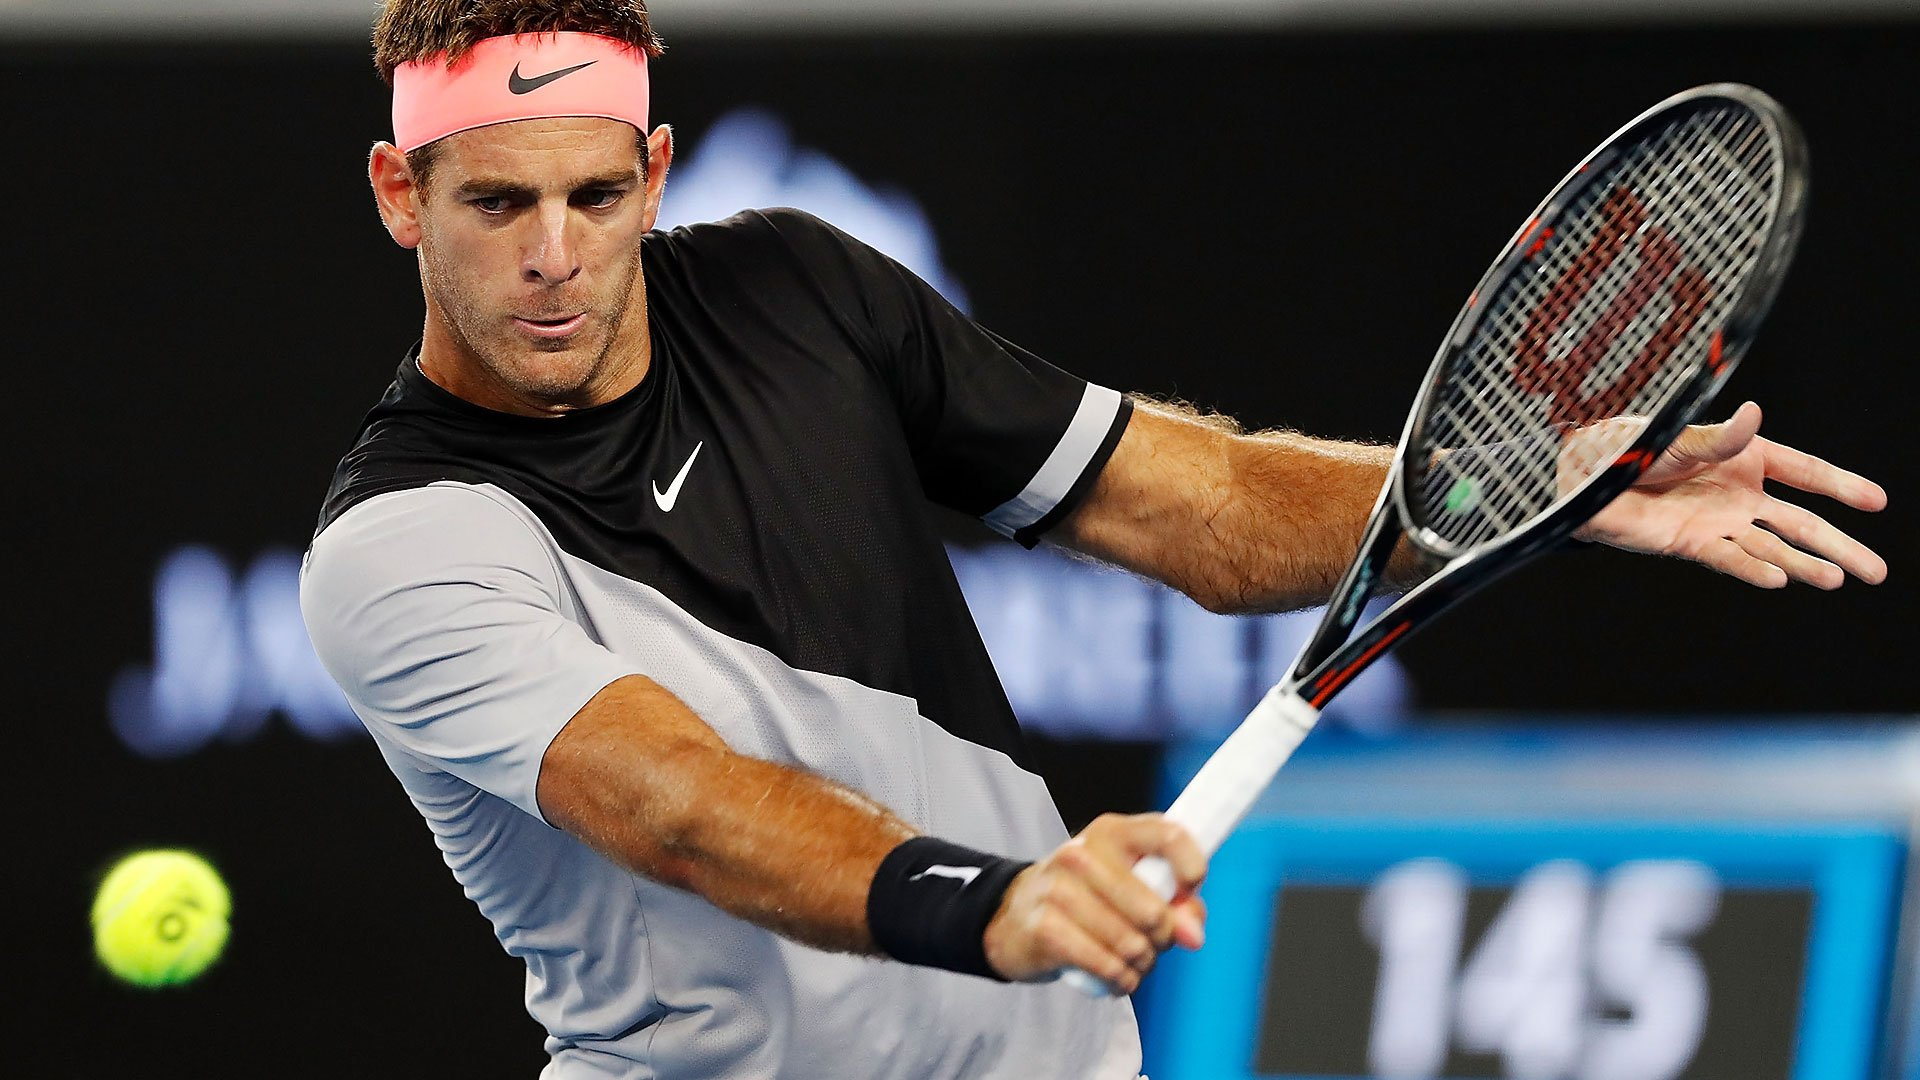 World No. 10 Juan Martin del Potro wrap up day 2 with a win at #AusOpen.   Read More ▶️: https://t.co/tyhjn3Yl7w https://t.co/OYpKcegwBo